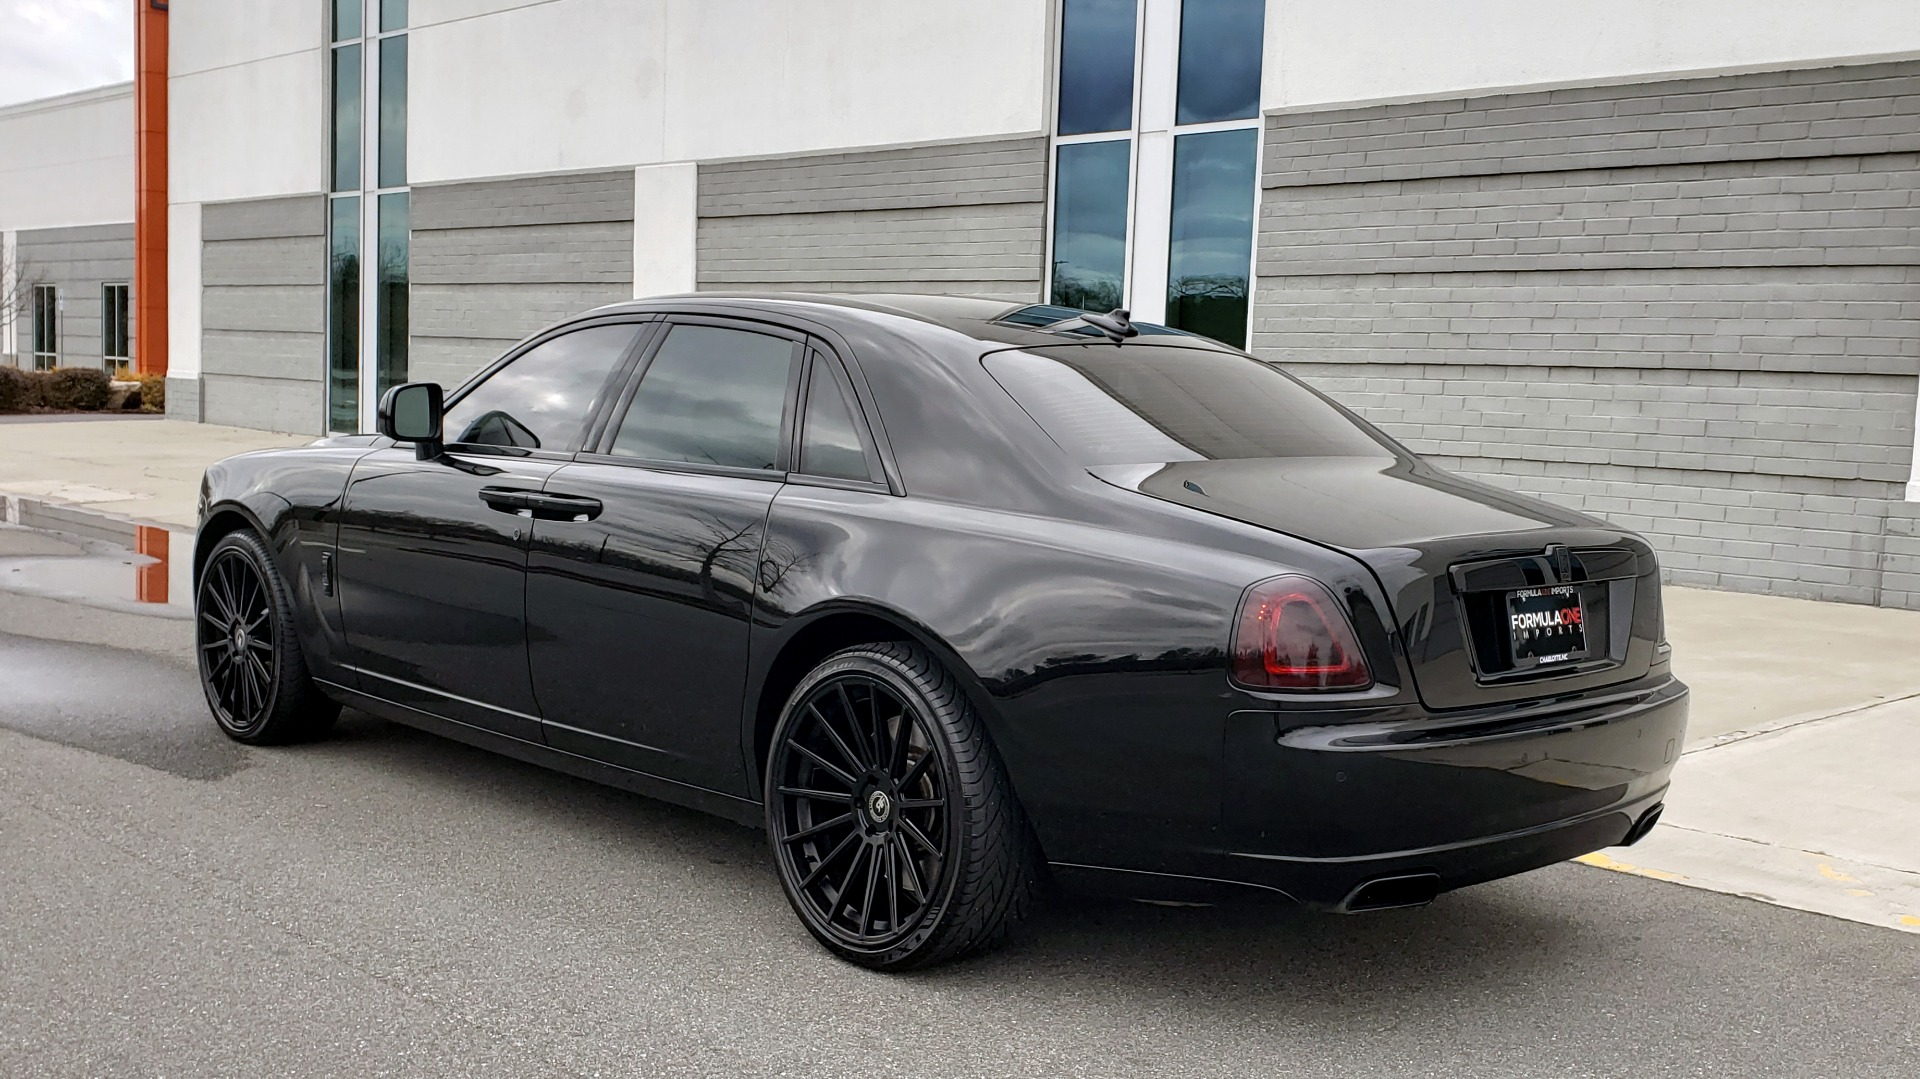 Used 2010 Rolls-Royce GHOST 6.6L TURBO V12 (563HP) / NAV / SUNROOF / SUICIDE DOORS for sale $89,000 at Formula Imports in Charlotte NC 28227 6